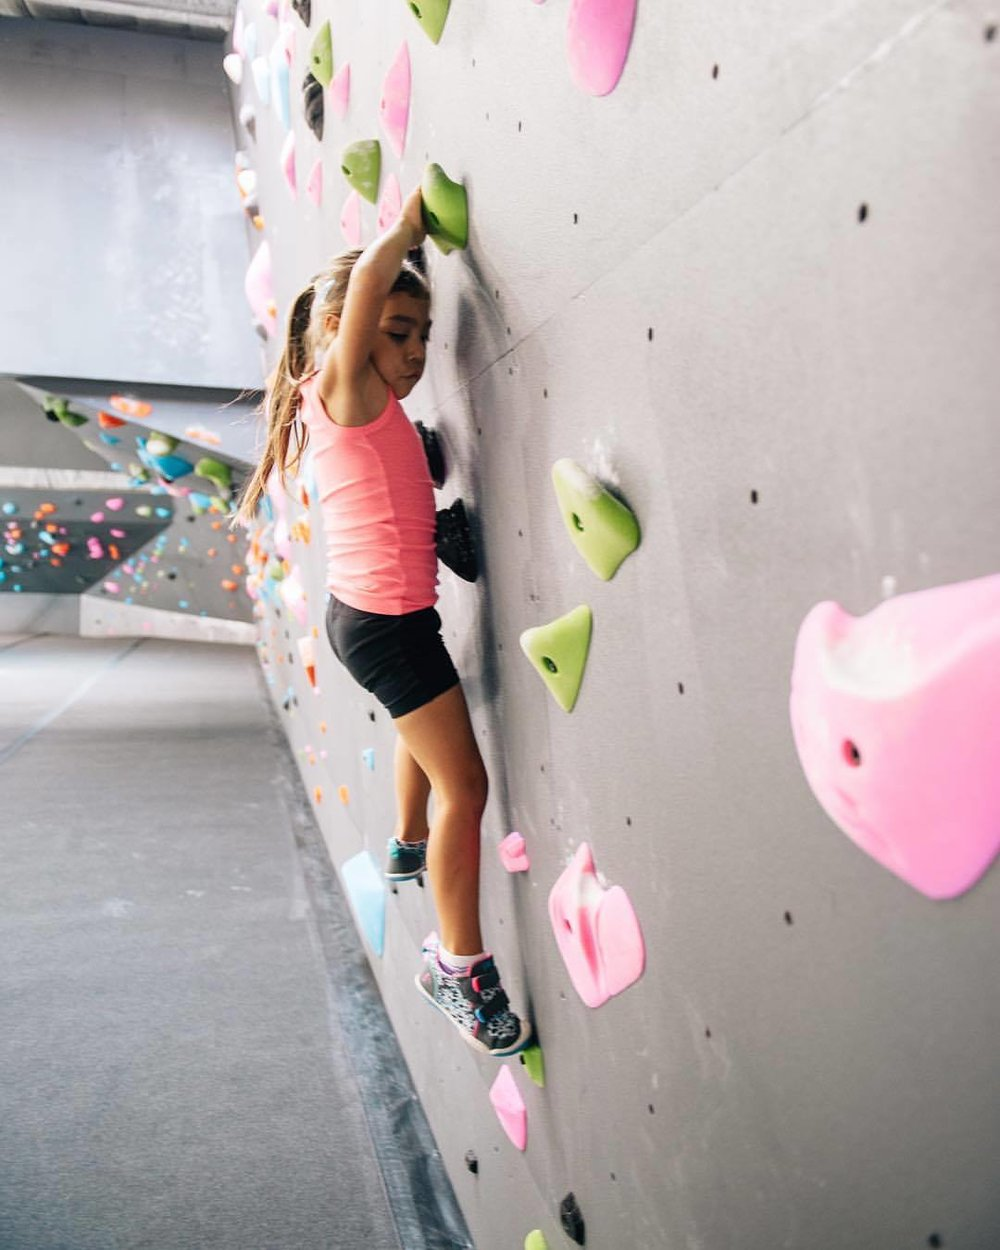 Terra Firma Bouldering | Youth Rec Teams | 6-8 Year Olds